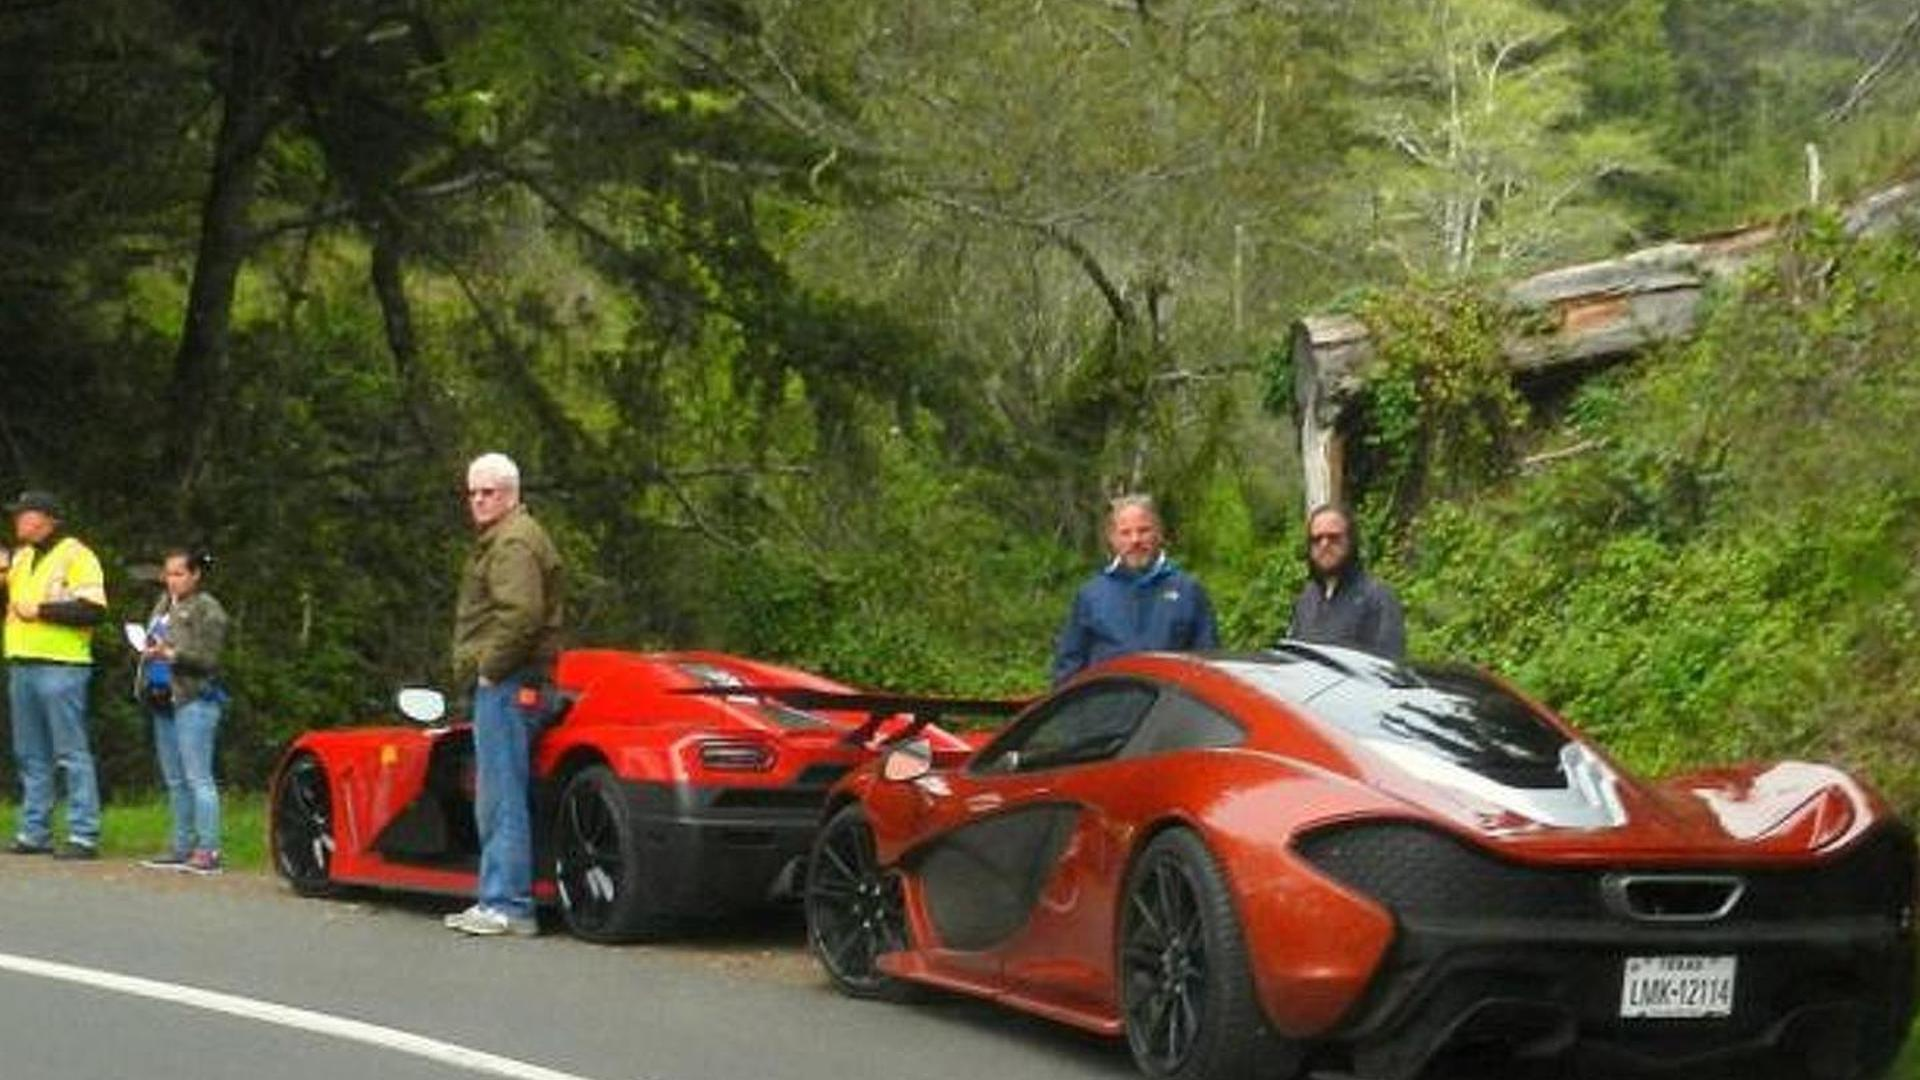 Koenigsegg Agera R And Mclaren P1 During Need For Speed Movie